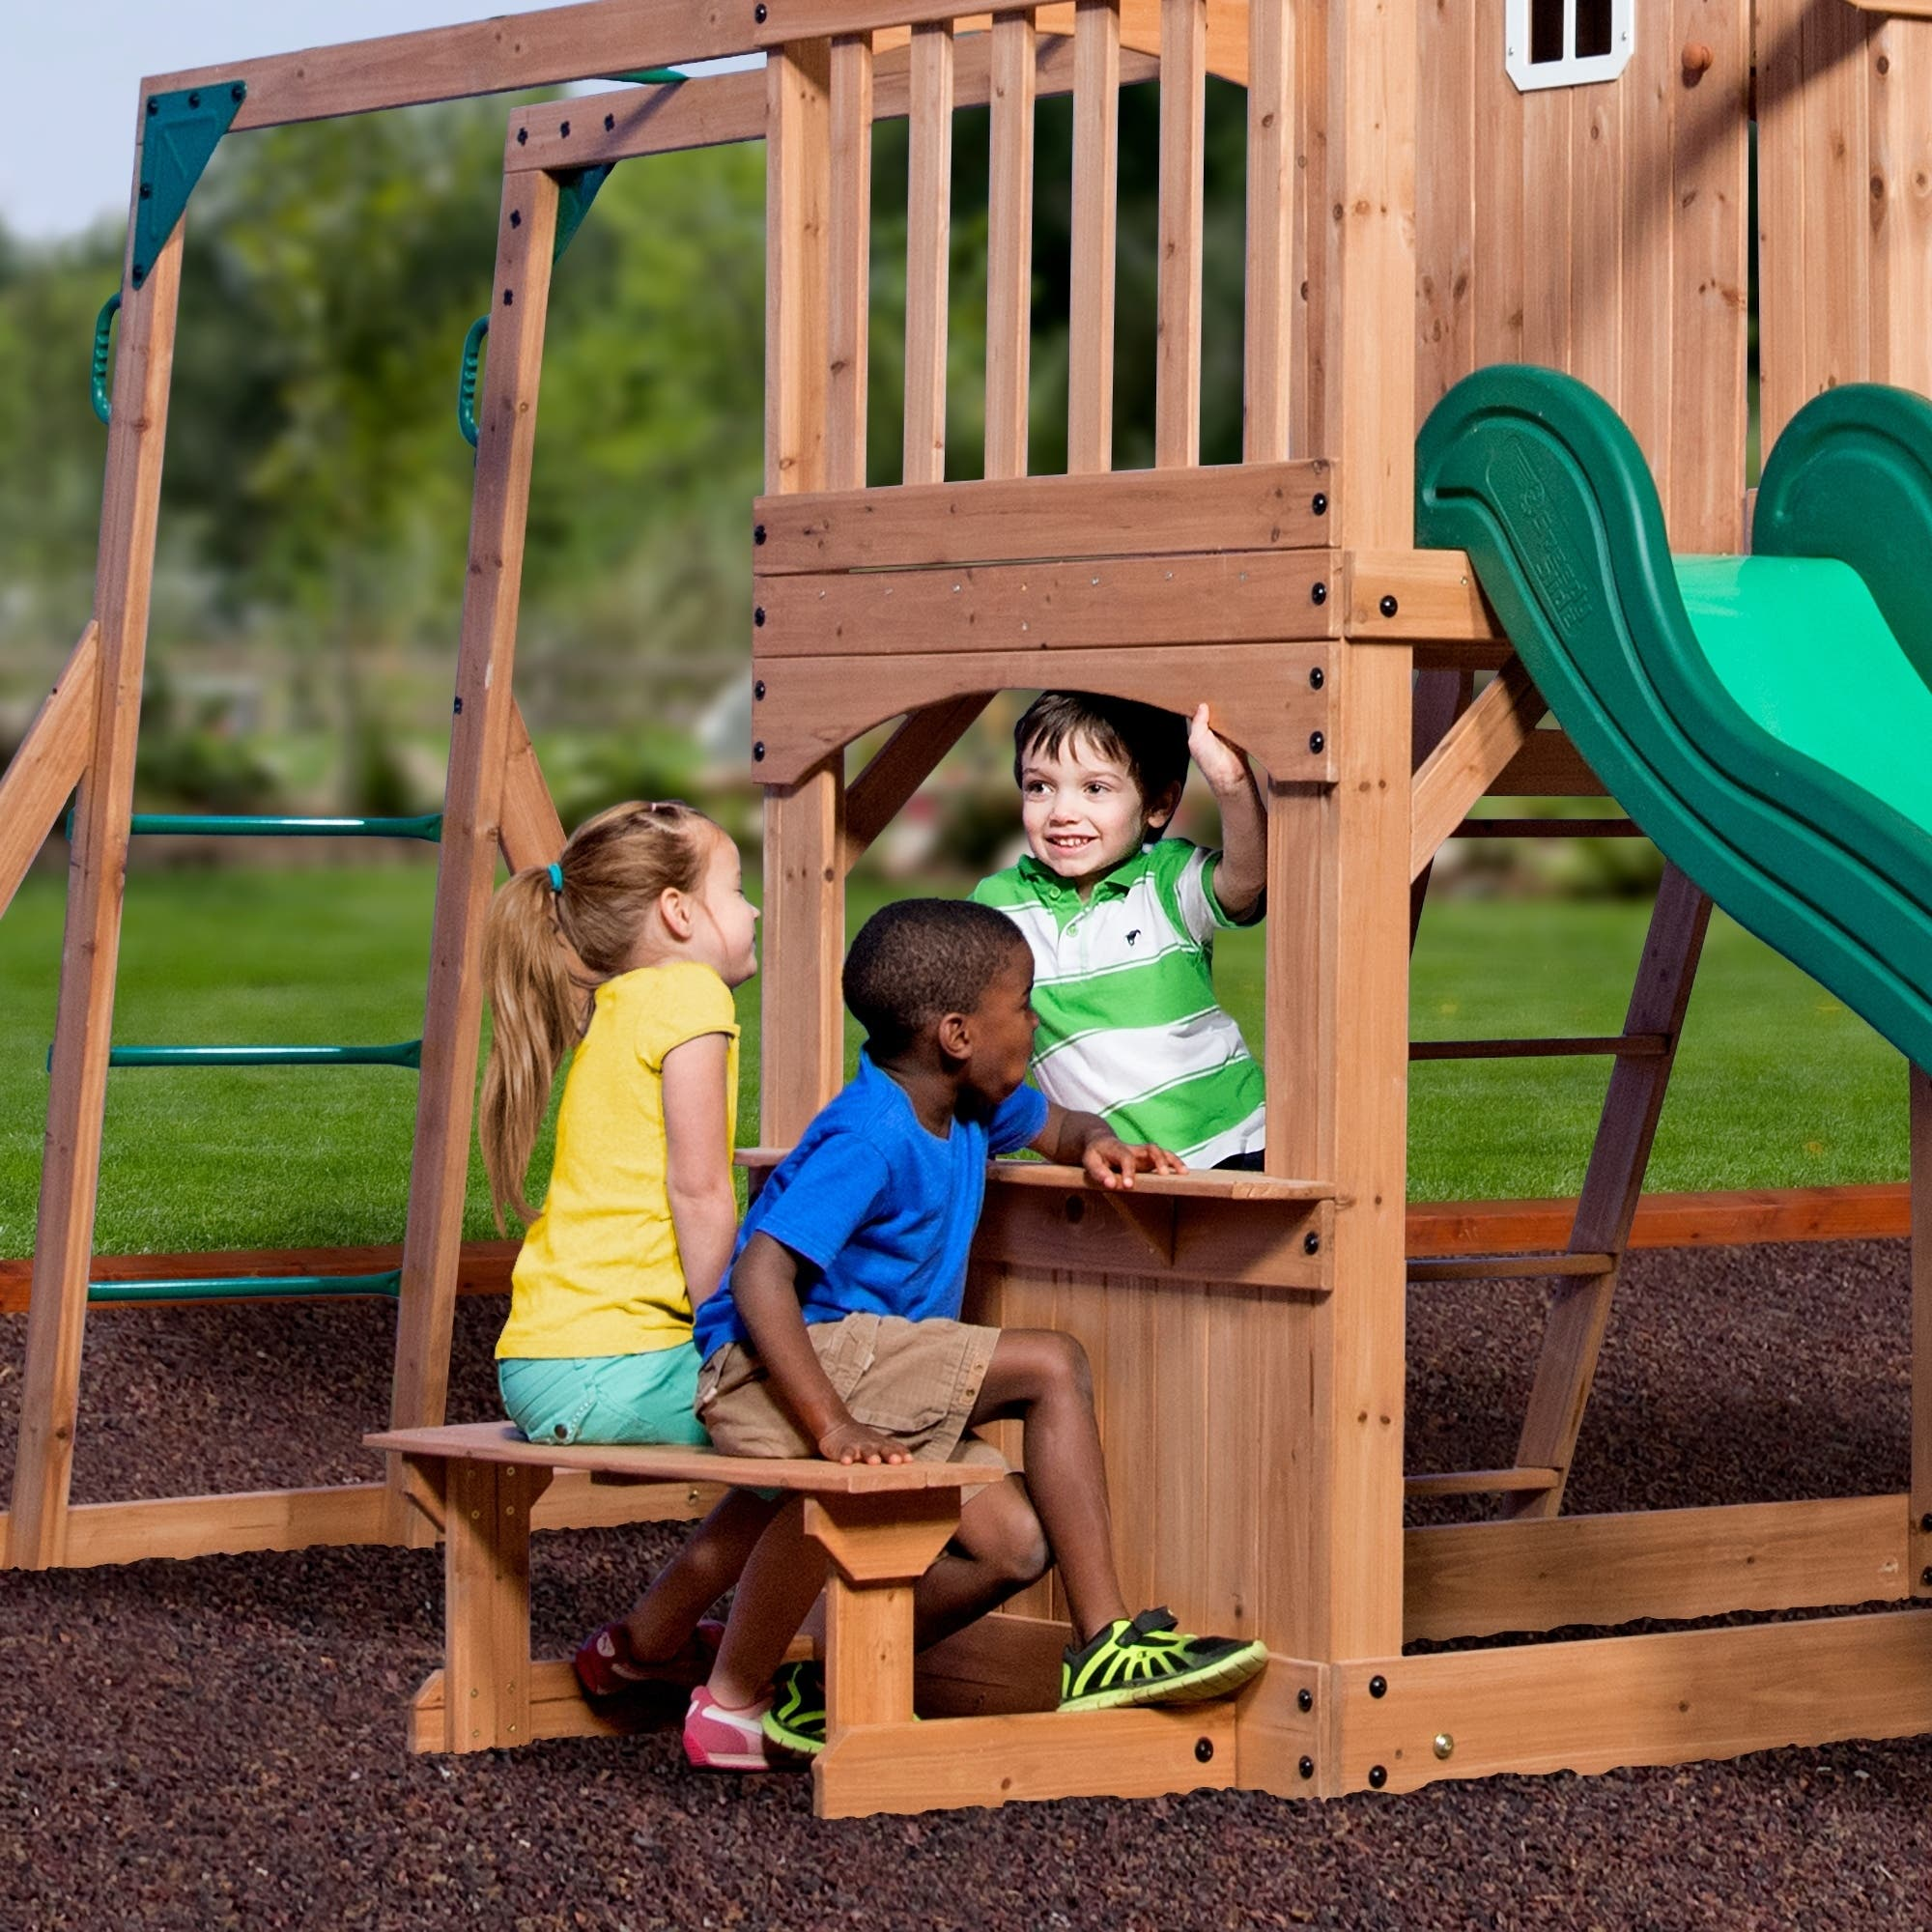 Buy Swing Sets Online at Overstock | Our Best Outdoor Play ...